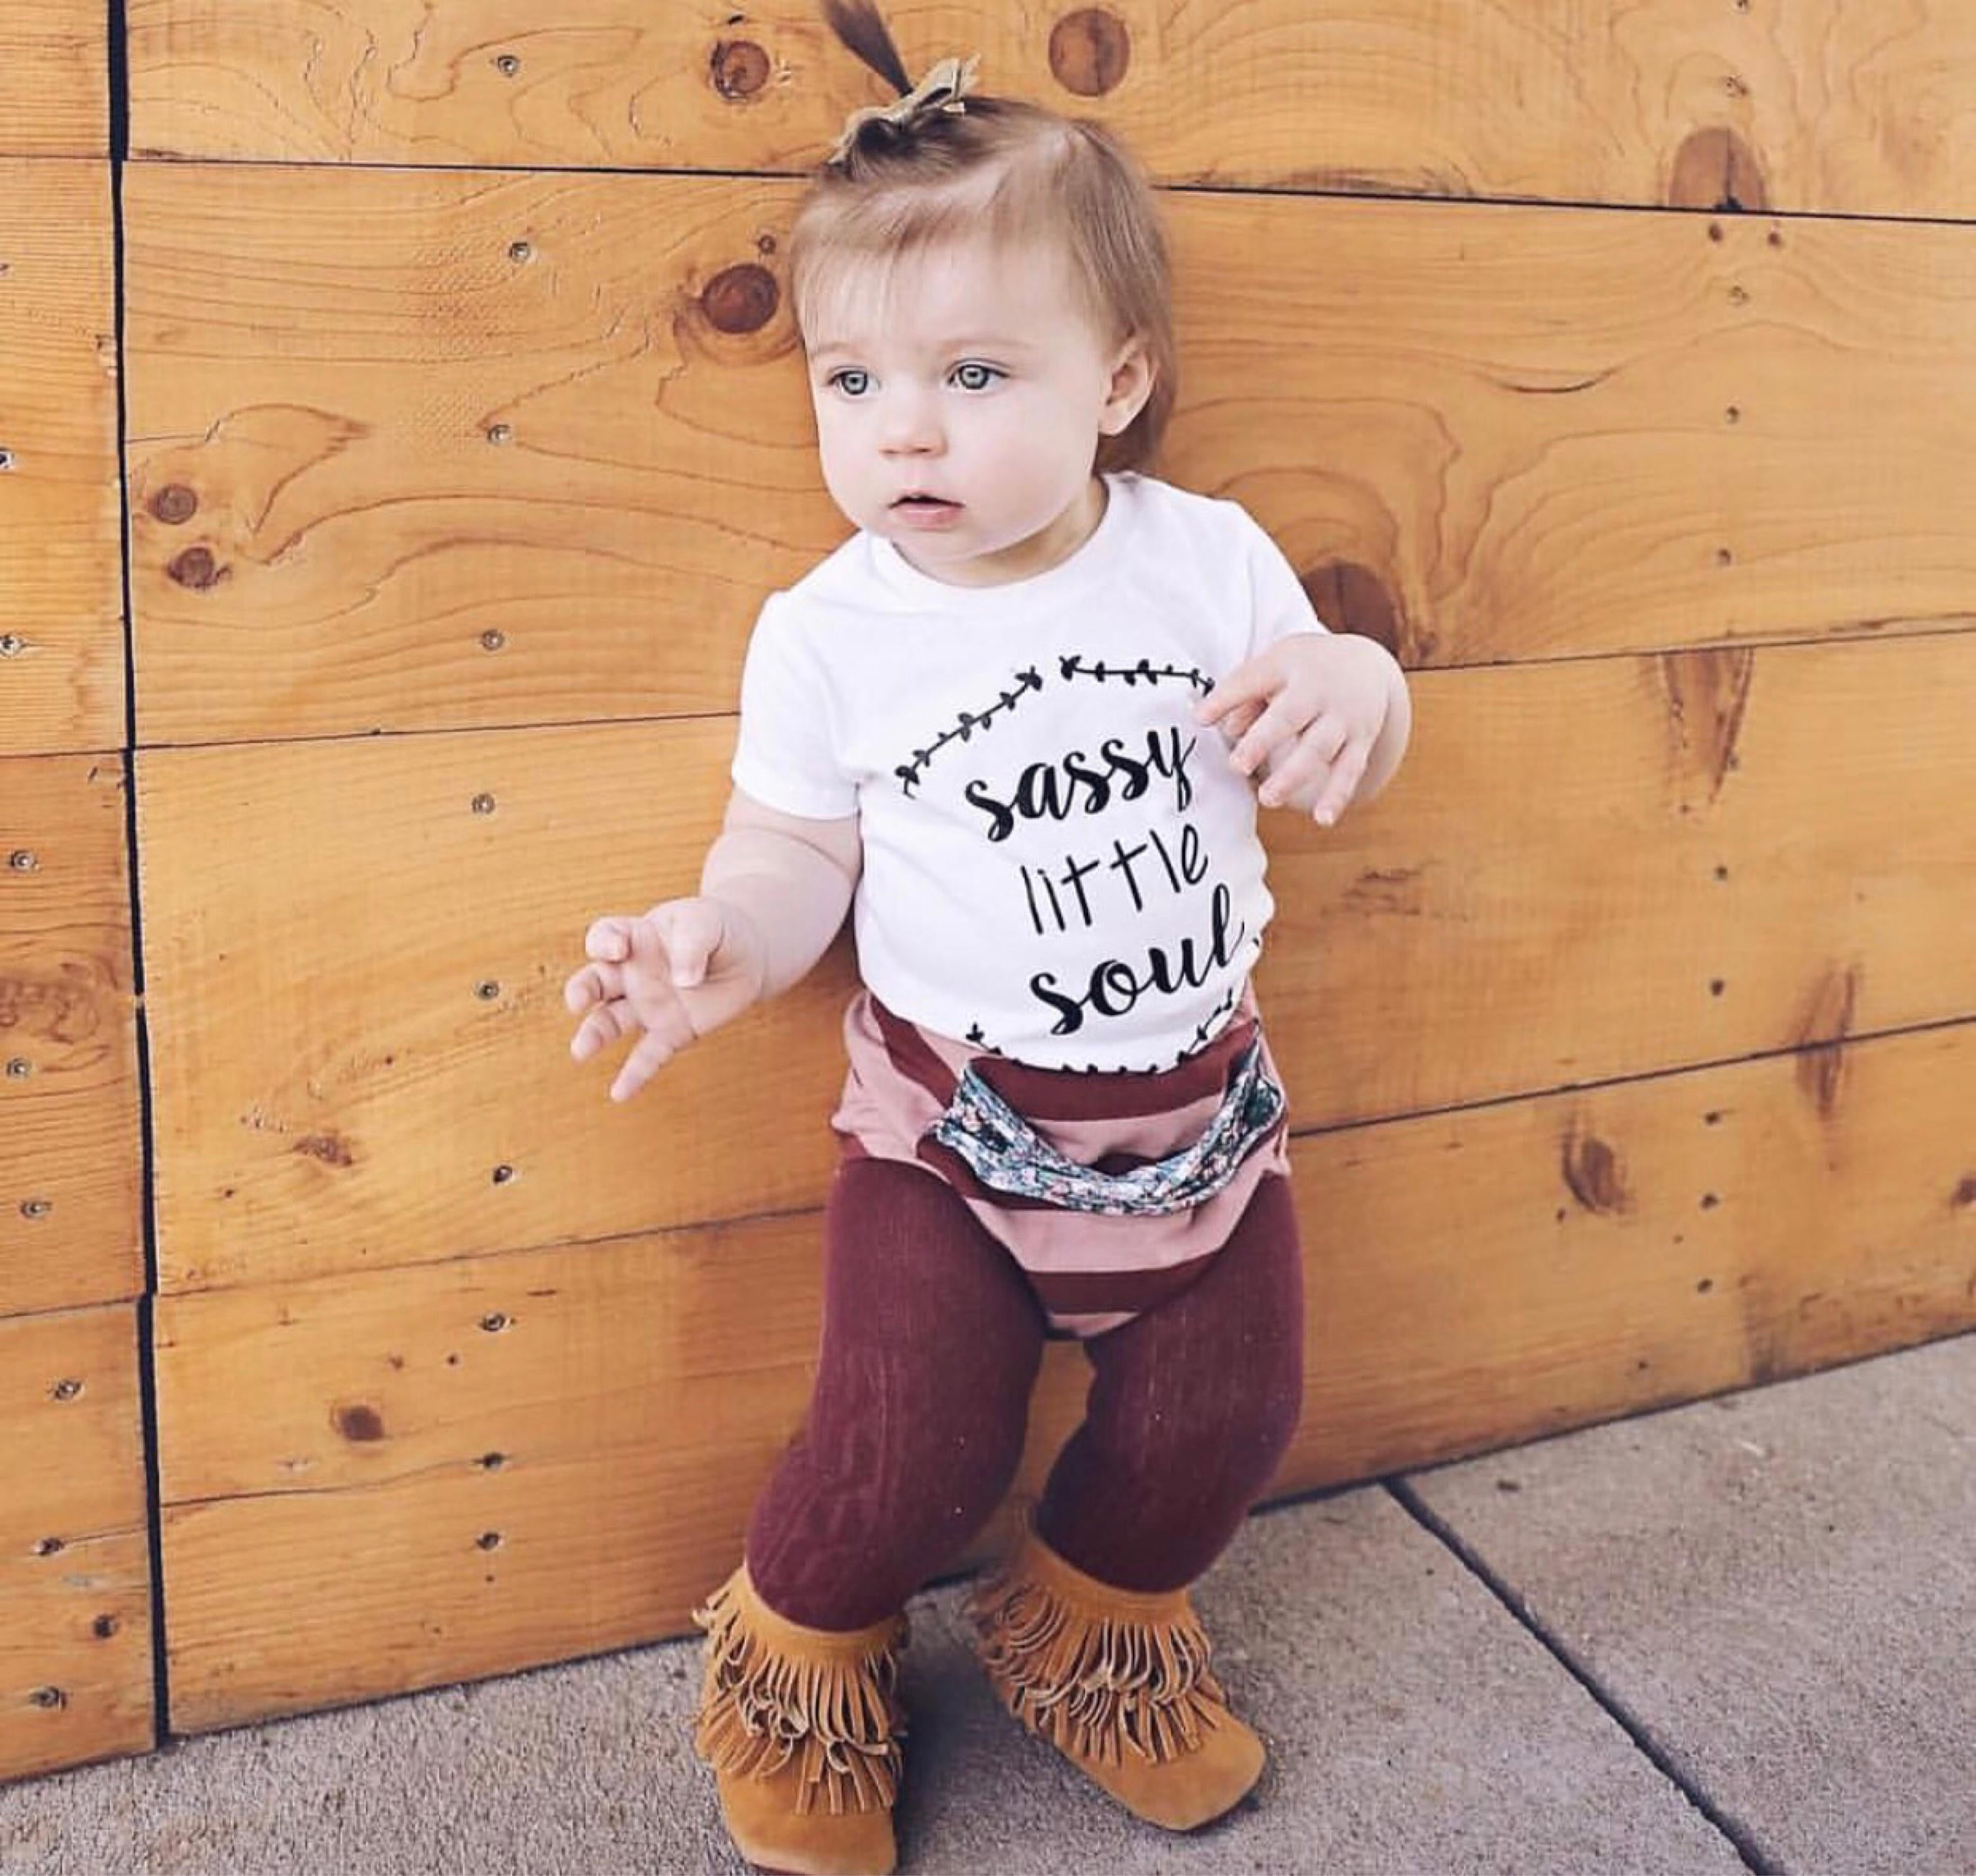 Sassy Little Soul Kids Tee (Pink, White)